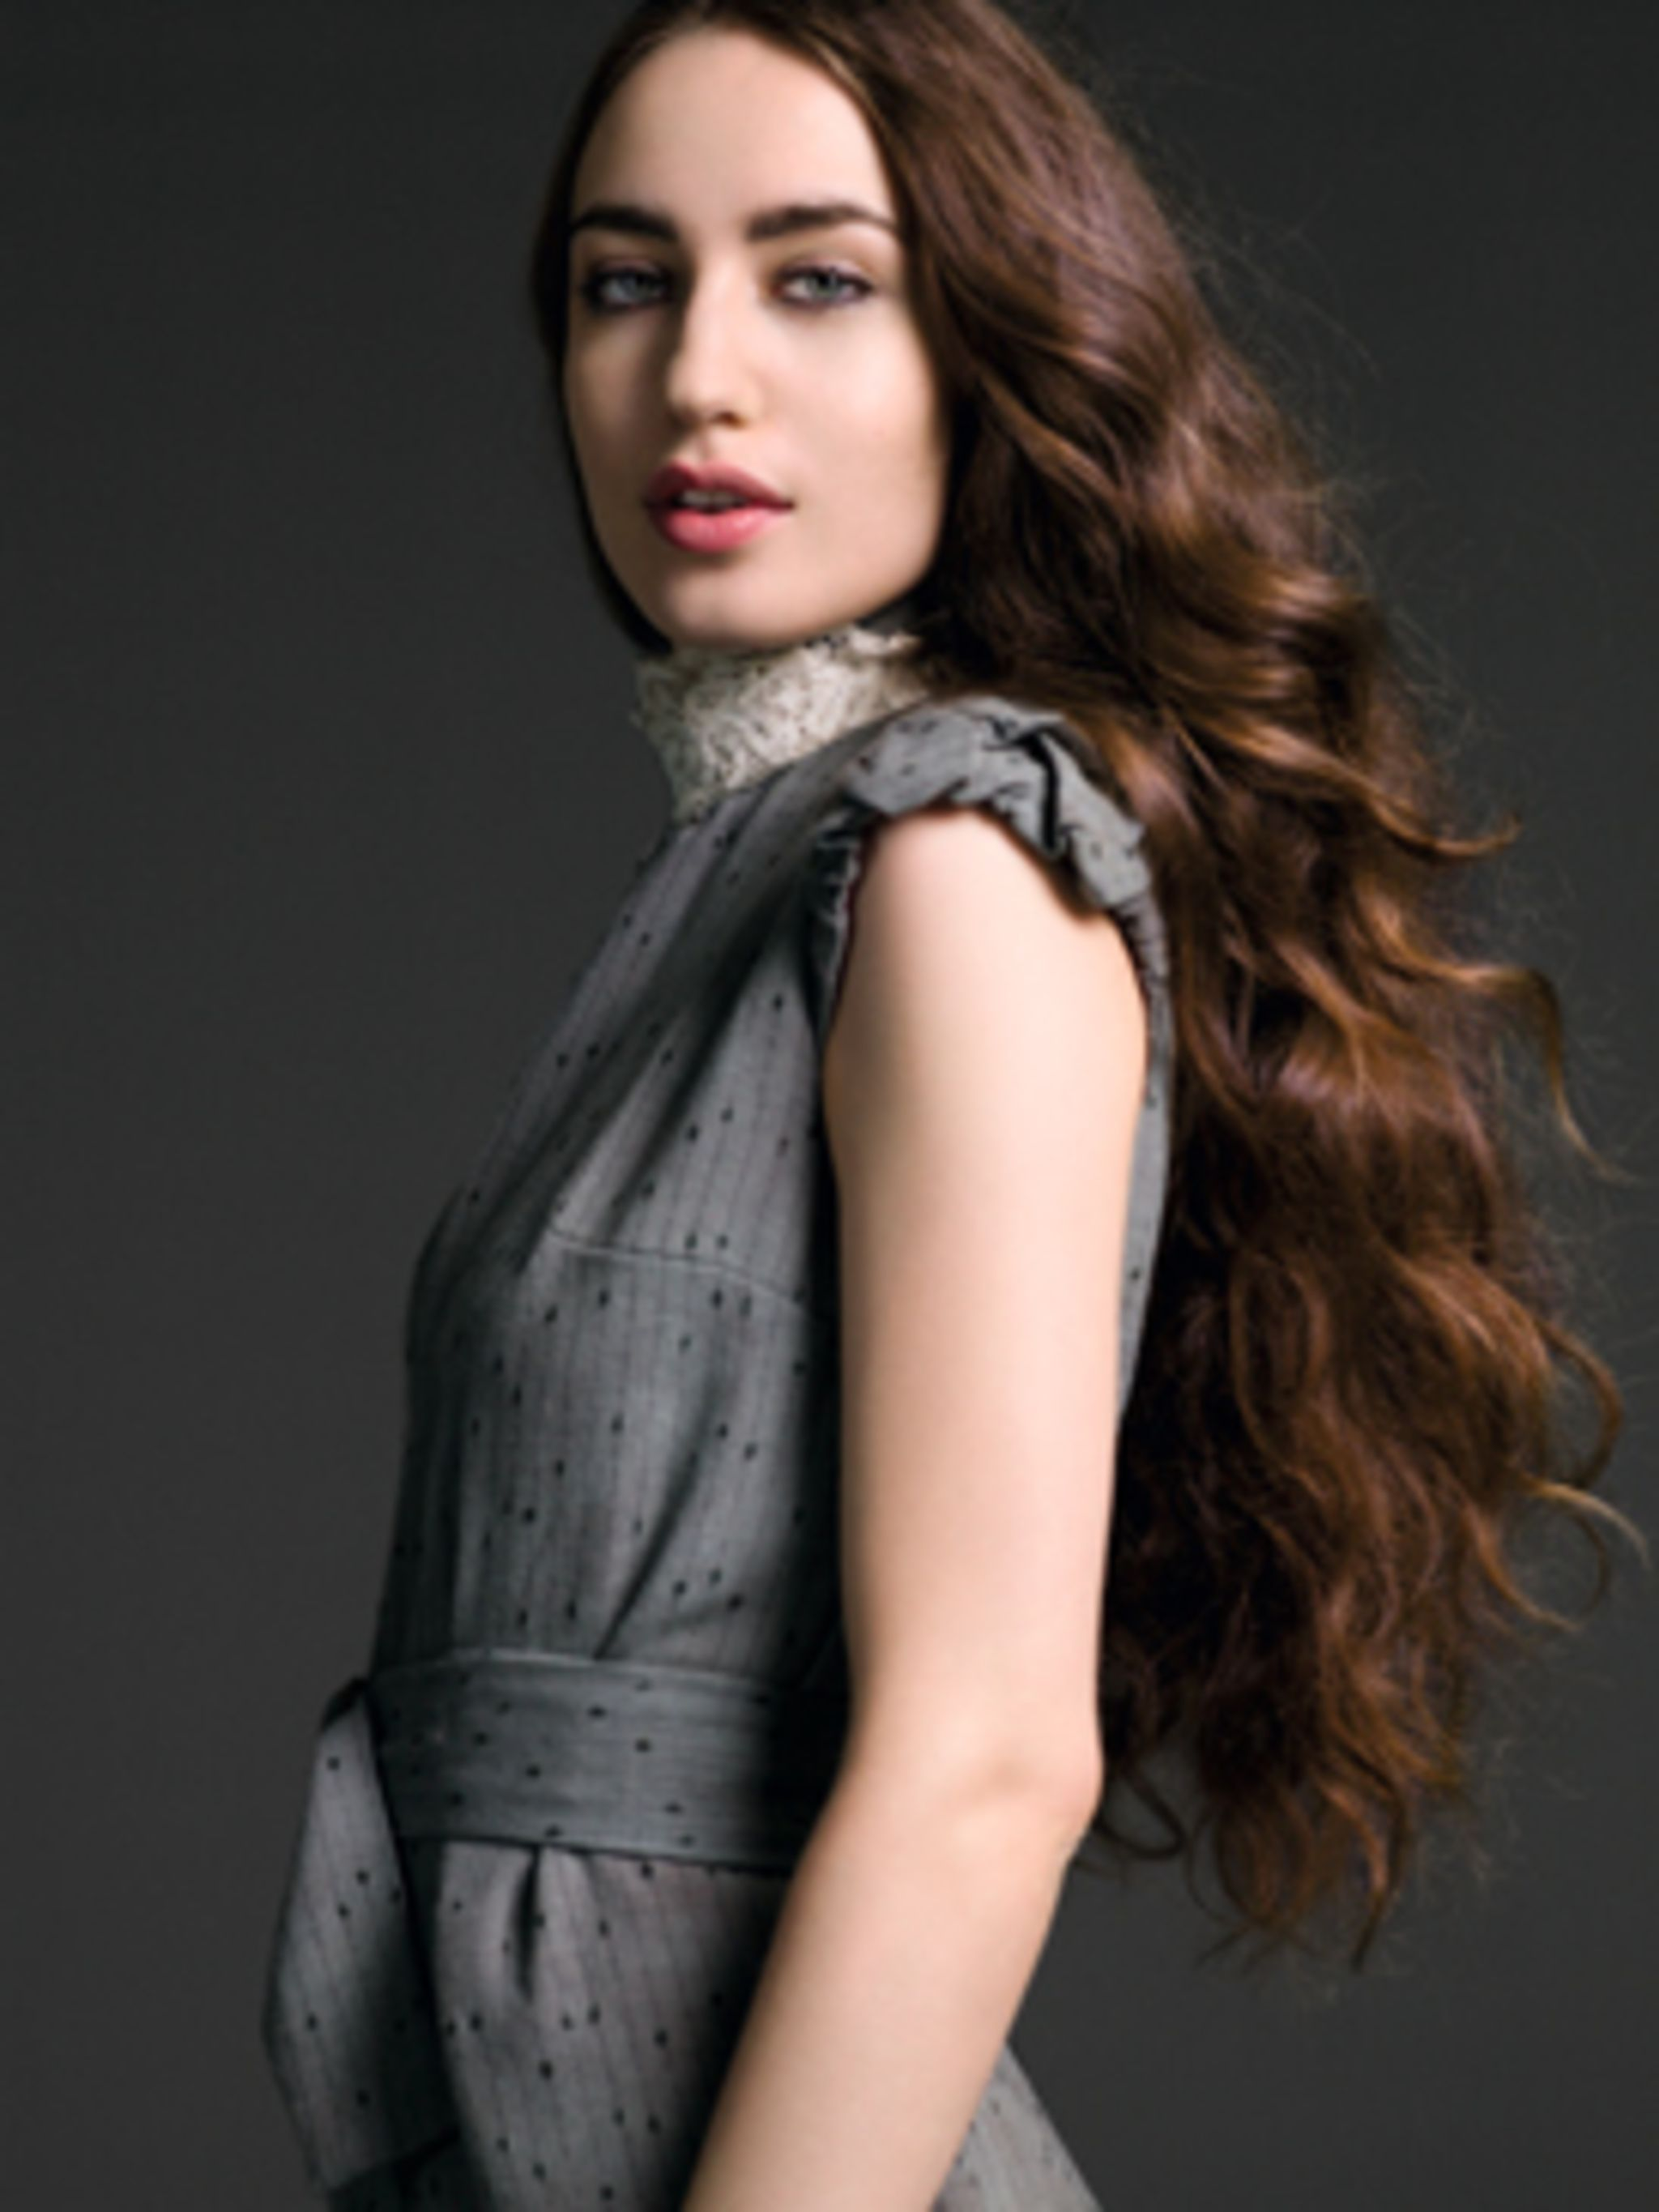 <p>Elizabeth Jagger wears grey dress with lace neck by Fiona Rose.</p>